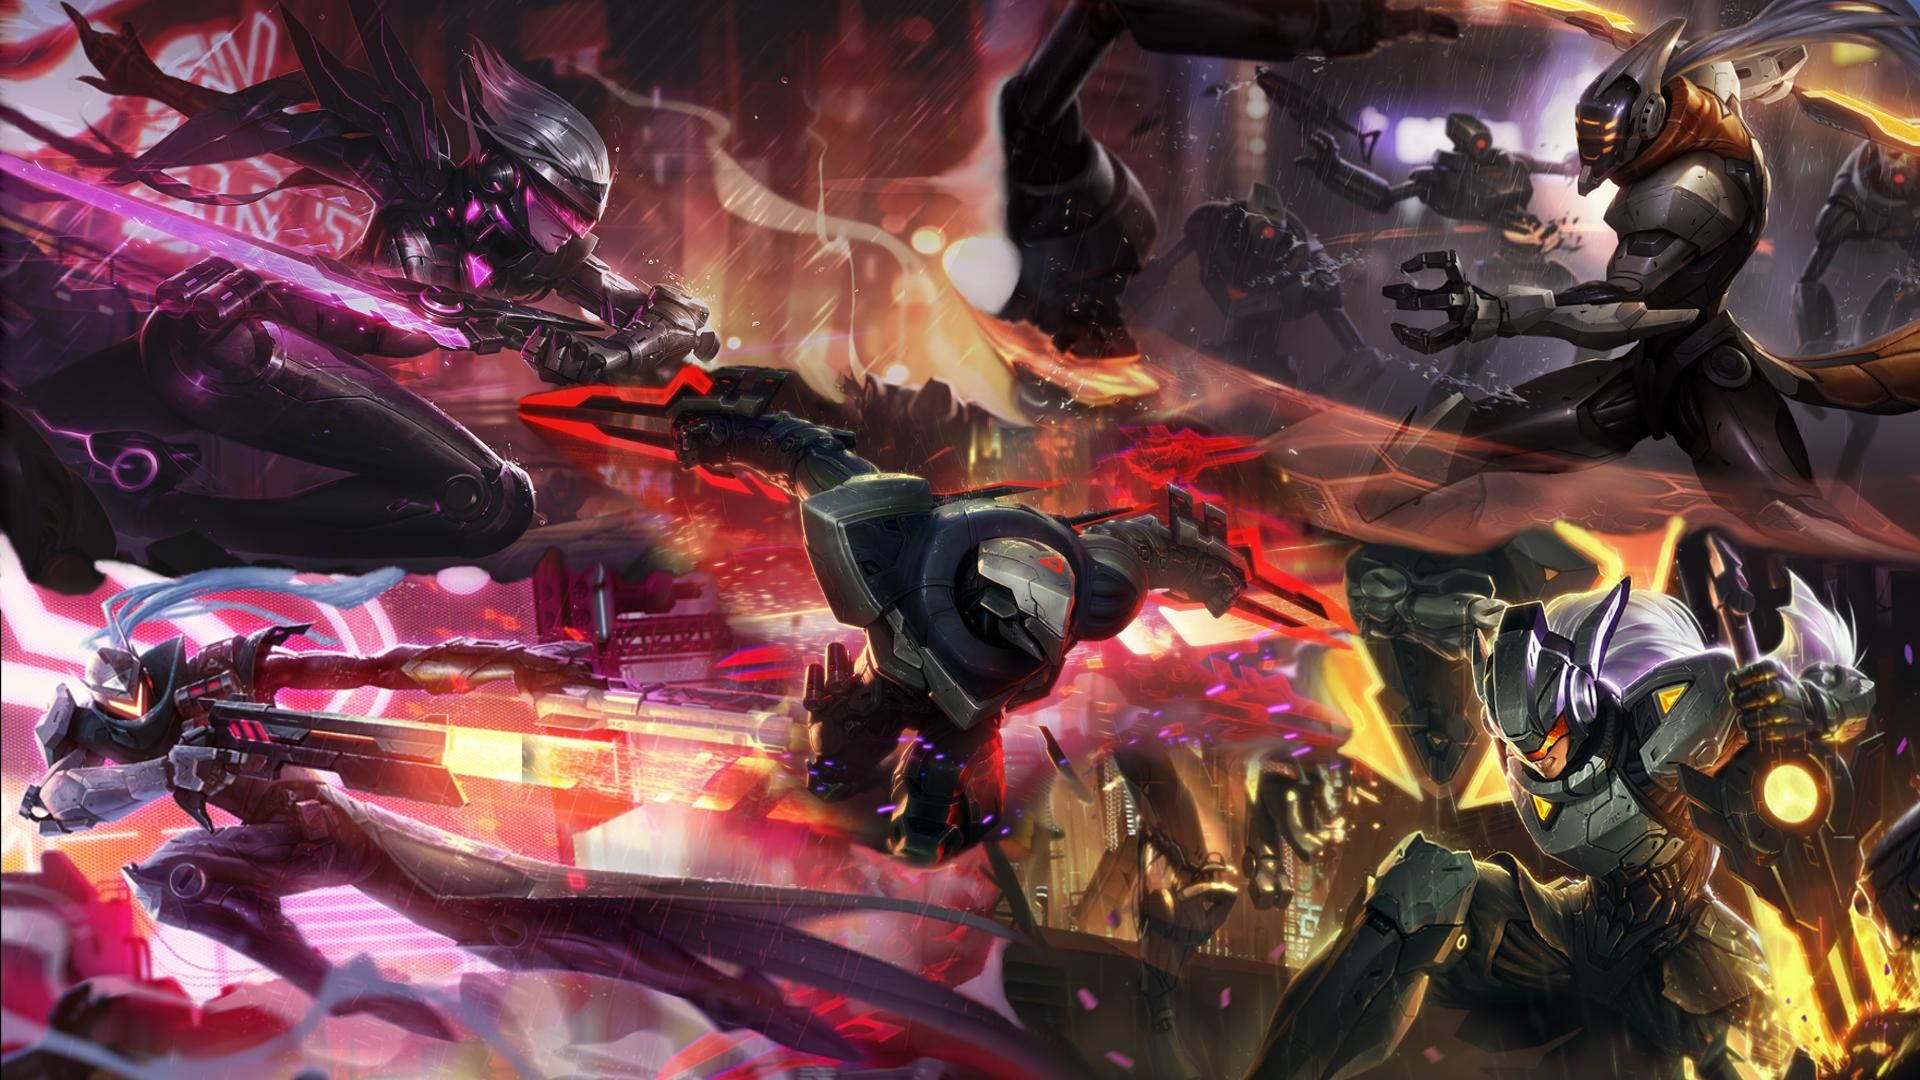 League Of Legends Project Zed Wallpaper Full Hd League Of Legends Best Background Images Lol League Of Legends